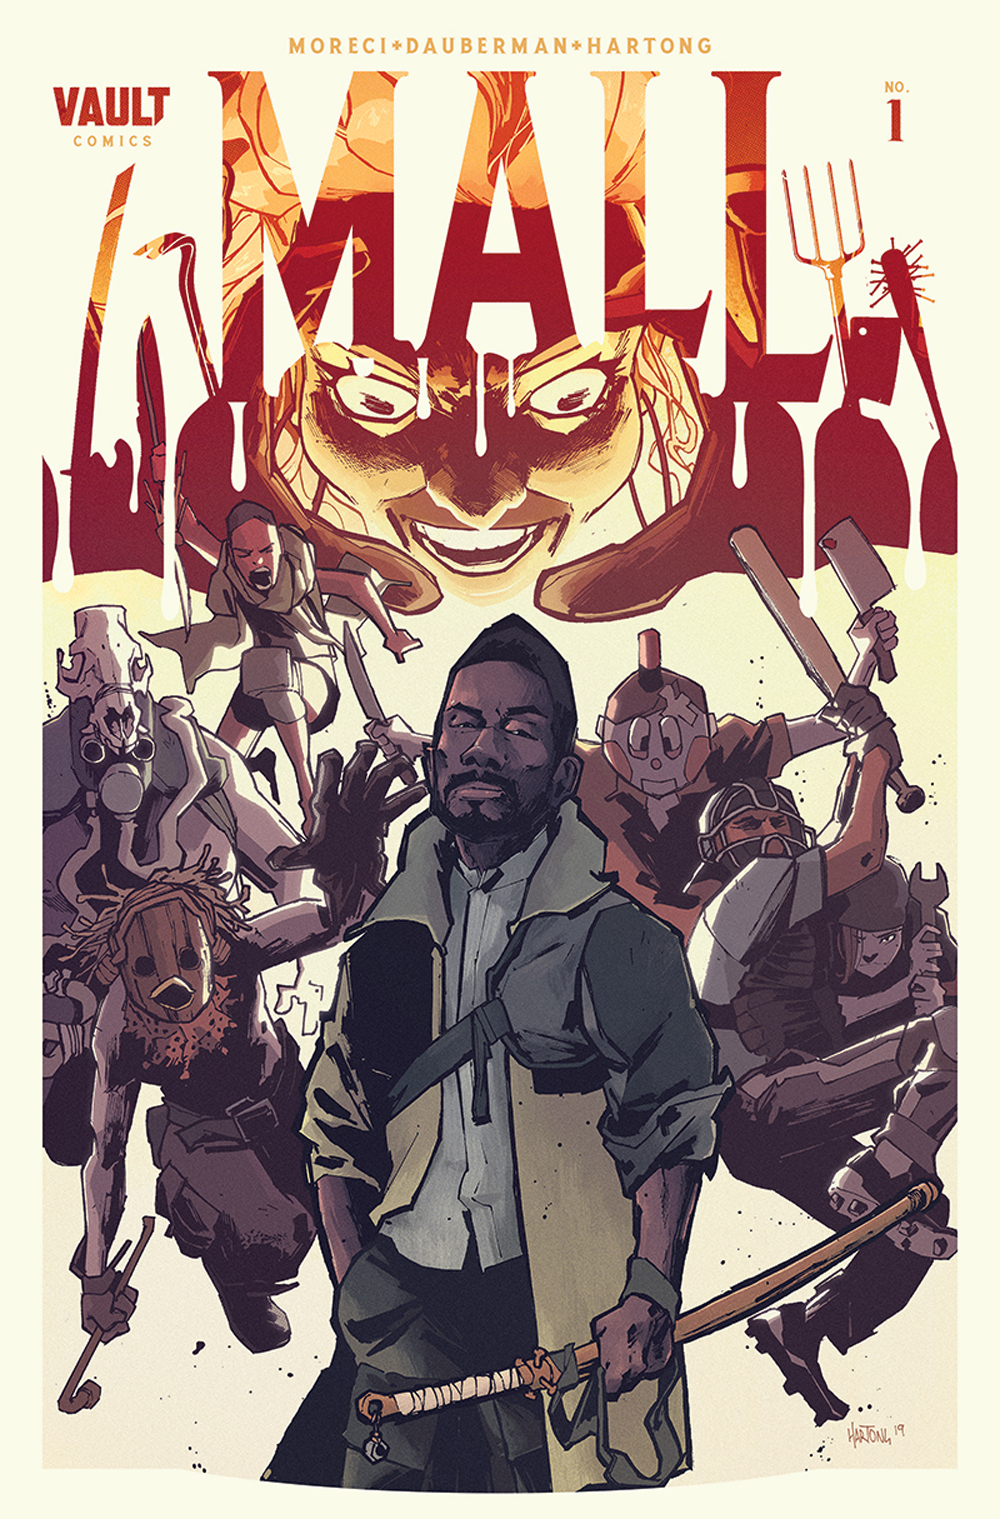 The Mall #1  is out Aug. 28, with final orders due on Aug. 5.